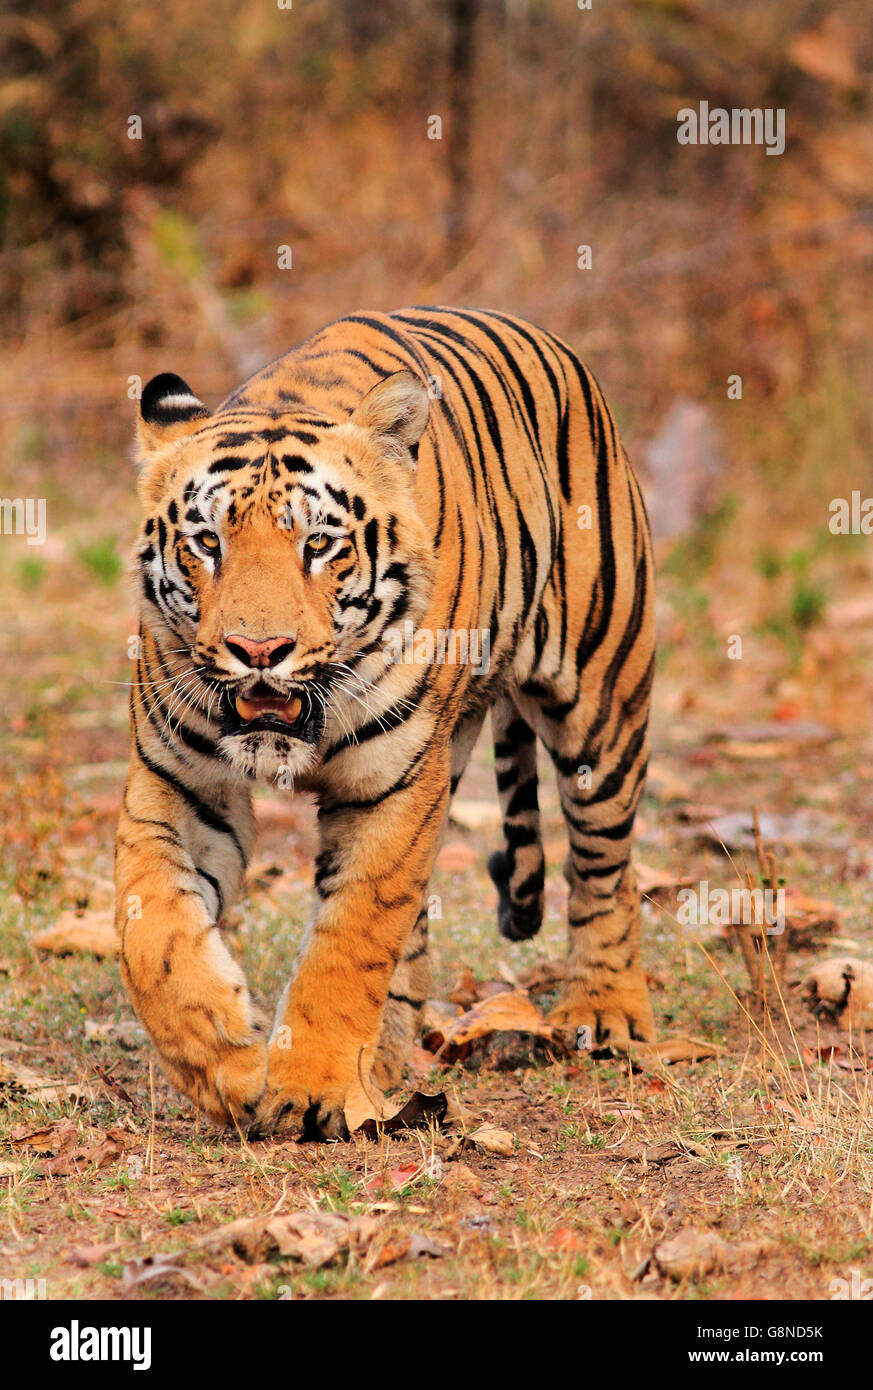 A royal Bengal Tiger named Gabbar In India - Stock Image